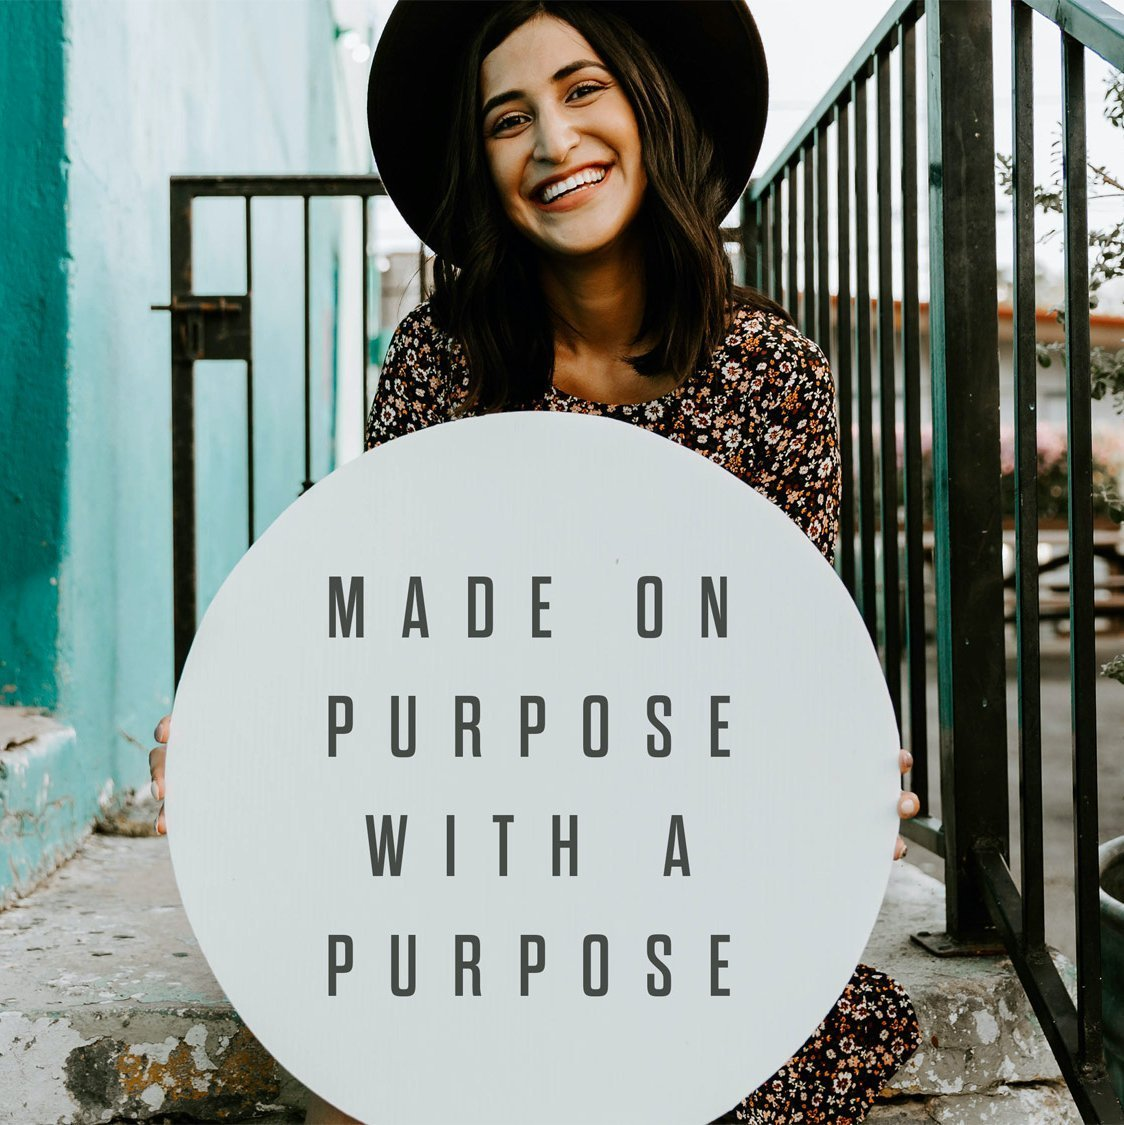 Made on Purpose with a Purpose